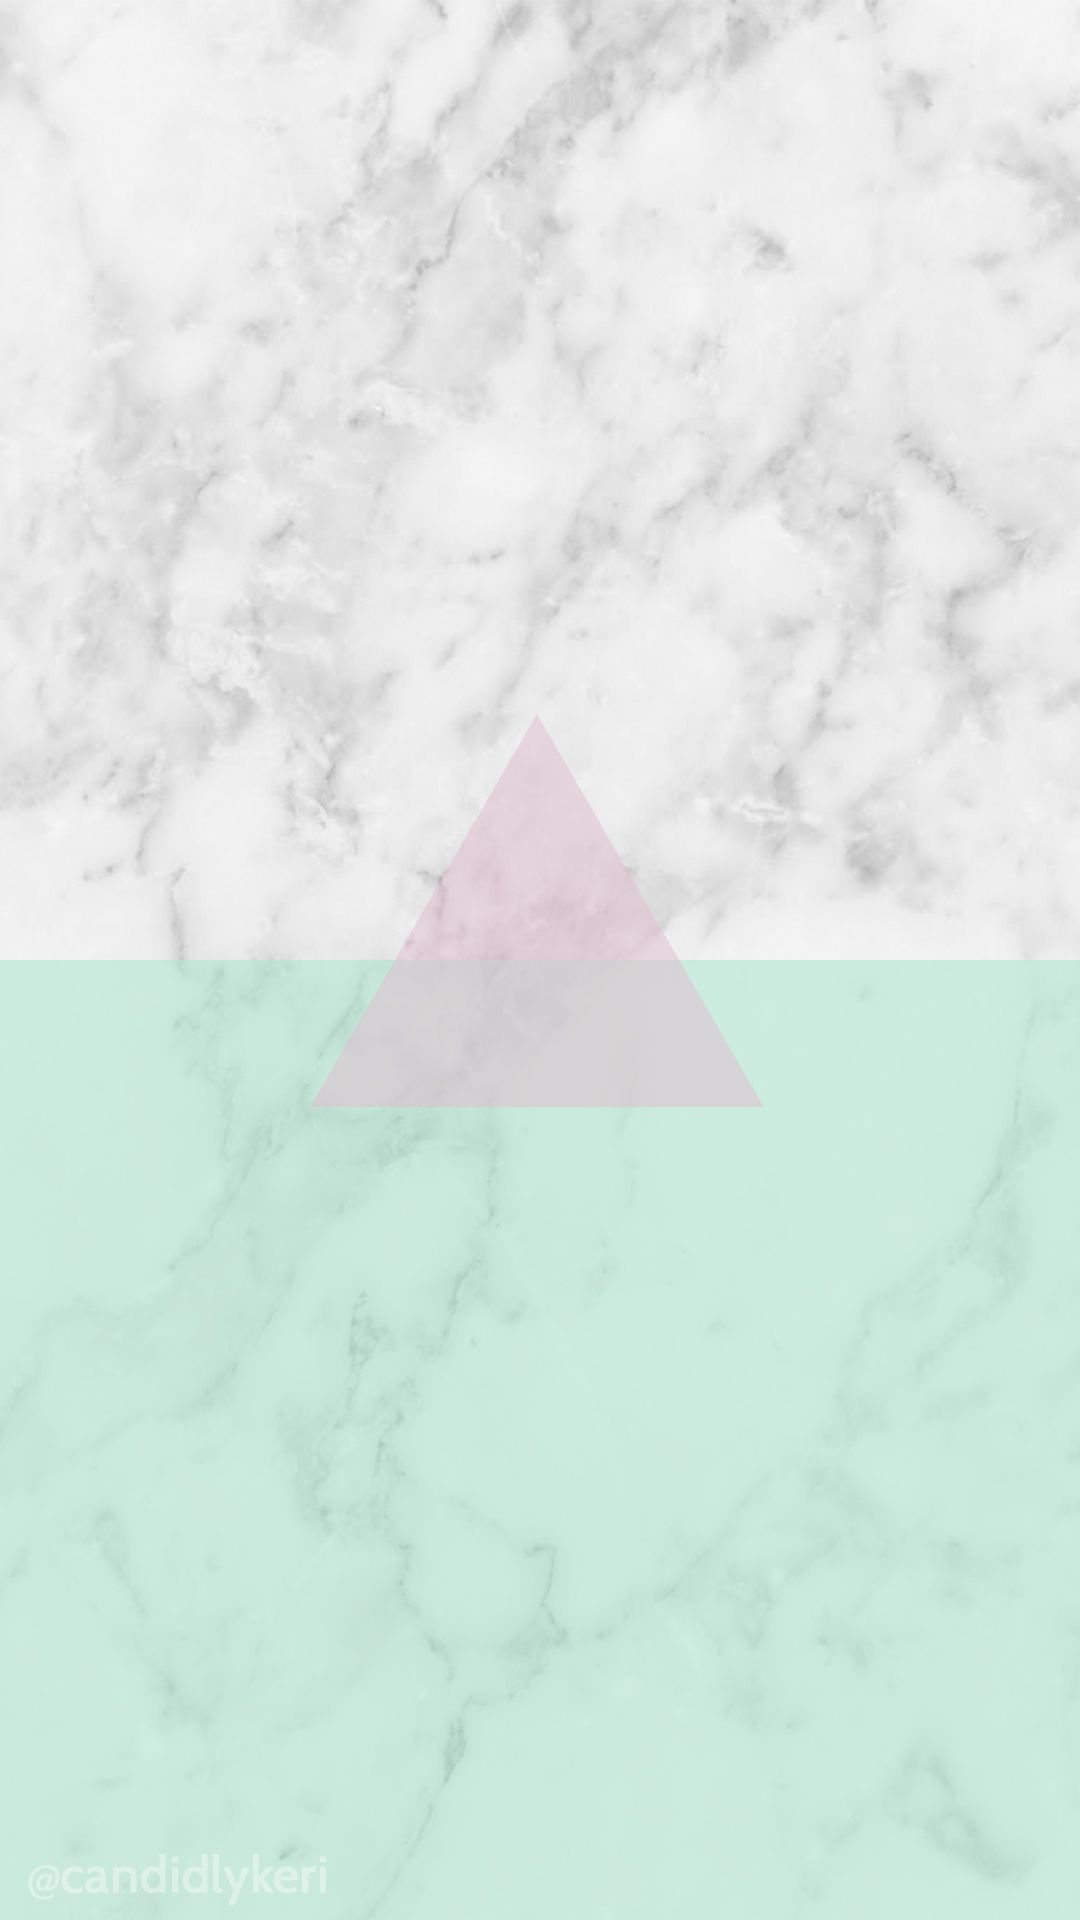 Granite Pink Green Triangle Background Wallpaper You Can Download